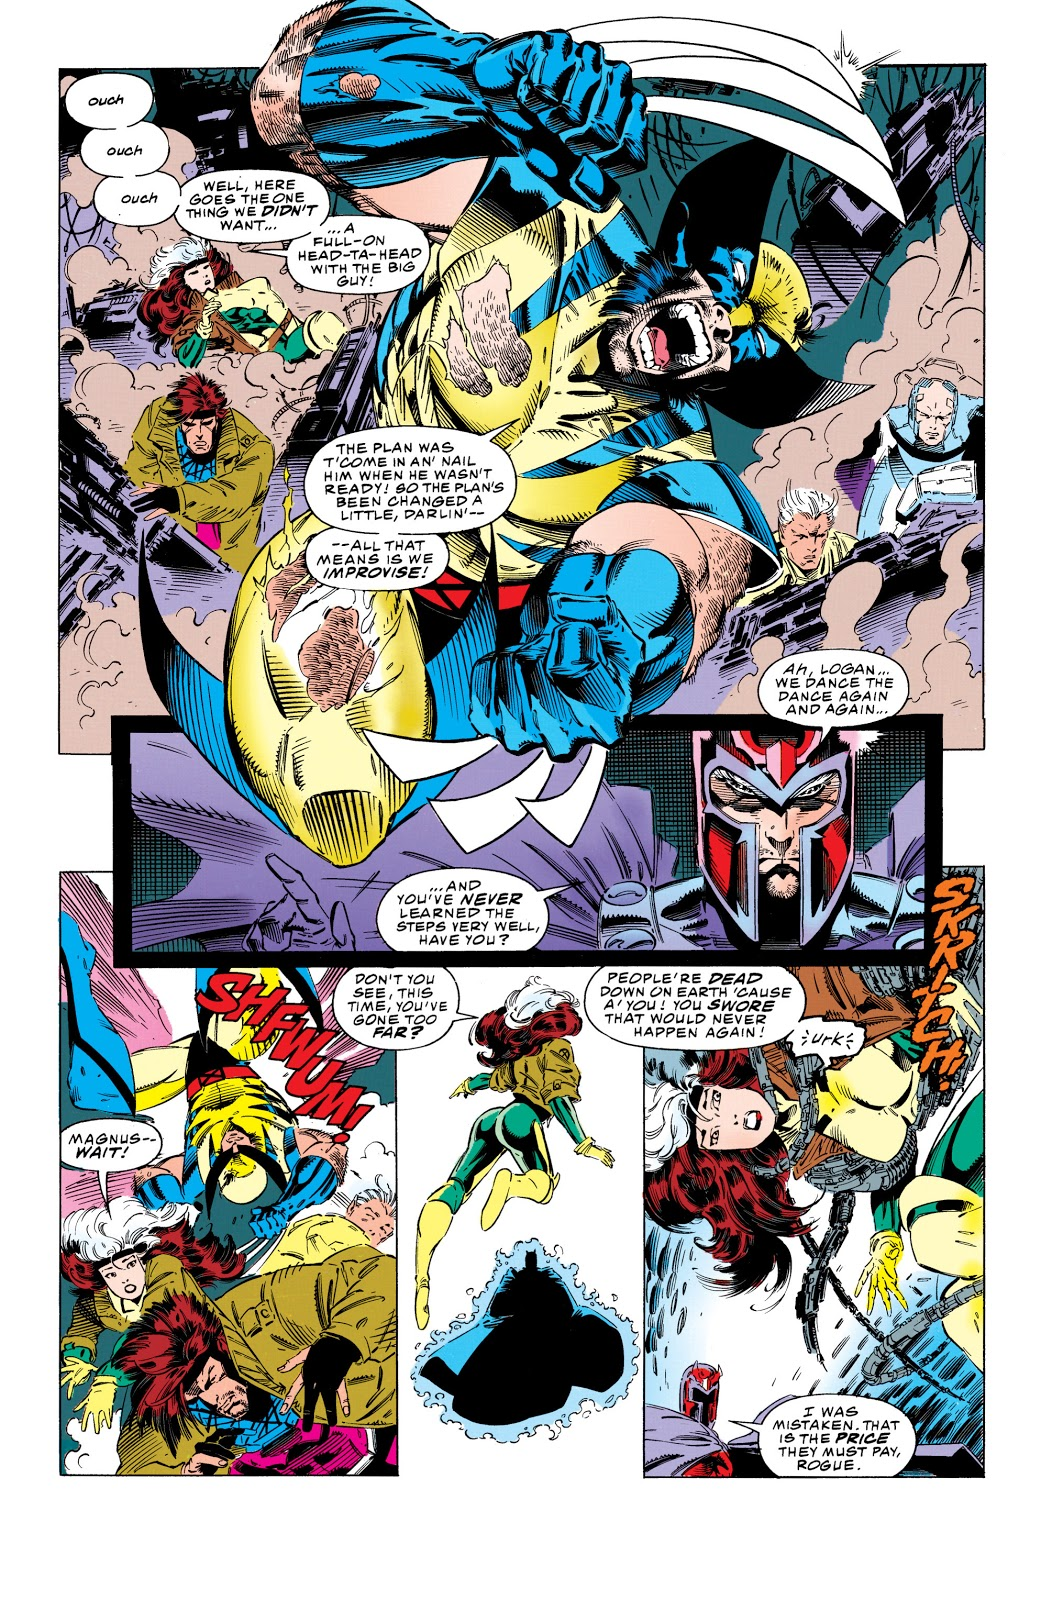 In X-Men (1993) #25, Wolverine charges on the offensive against Magneto.